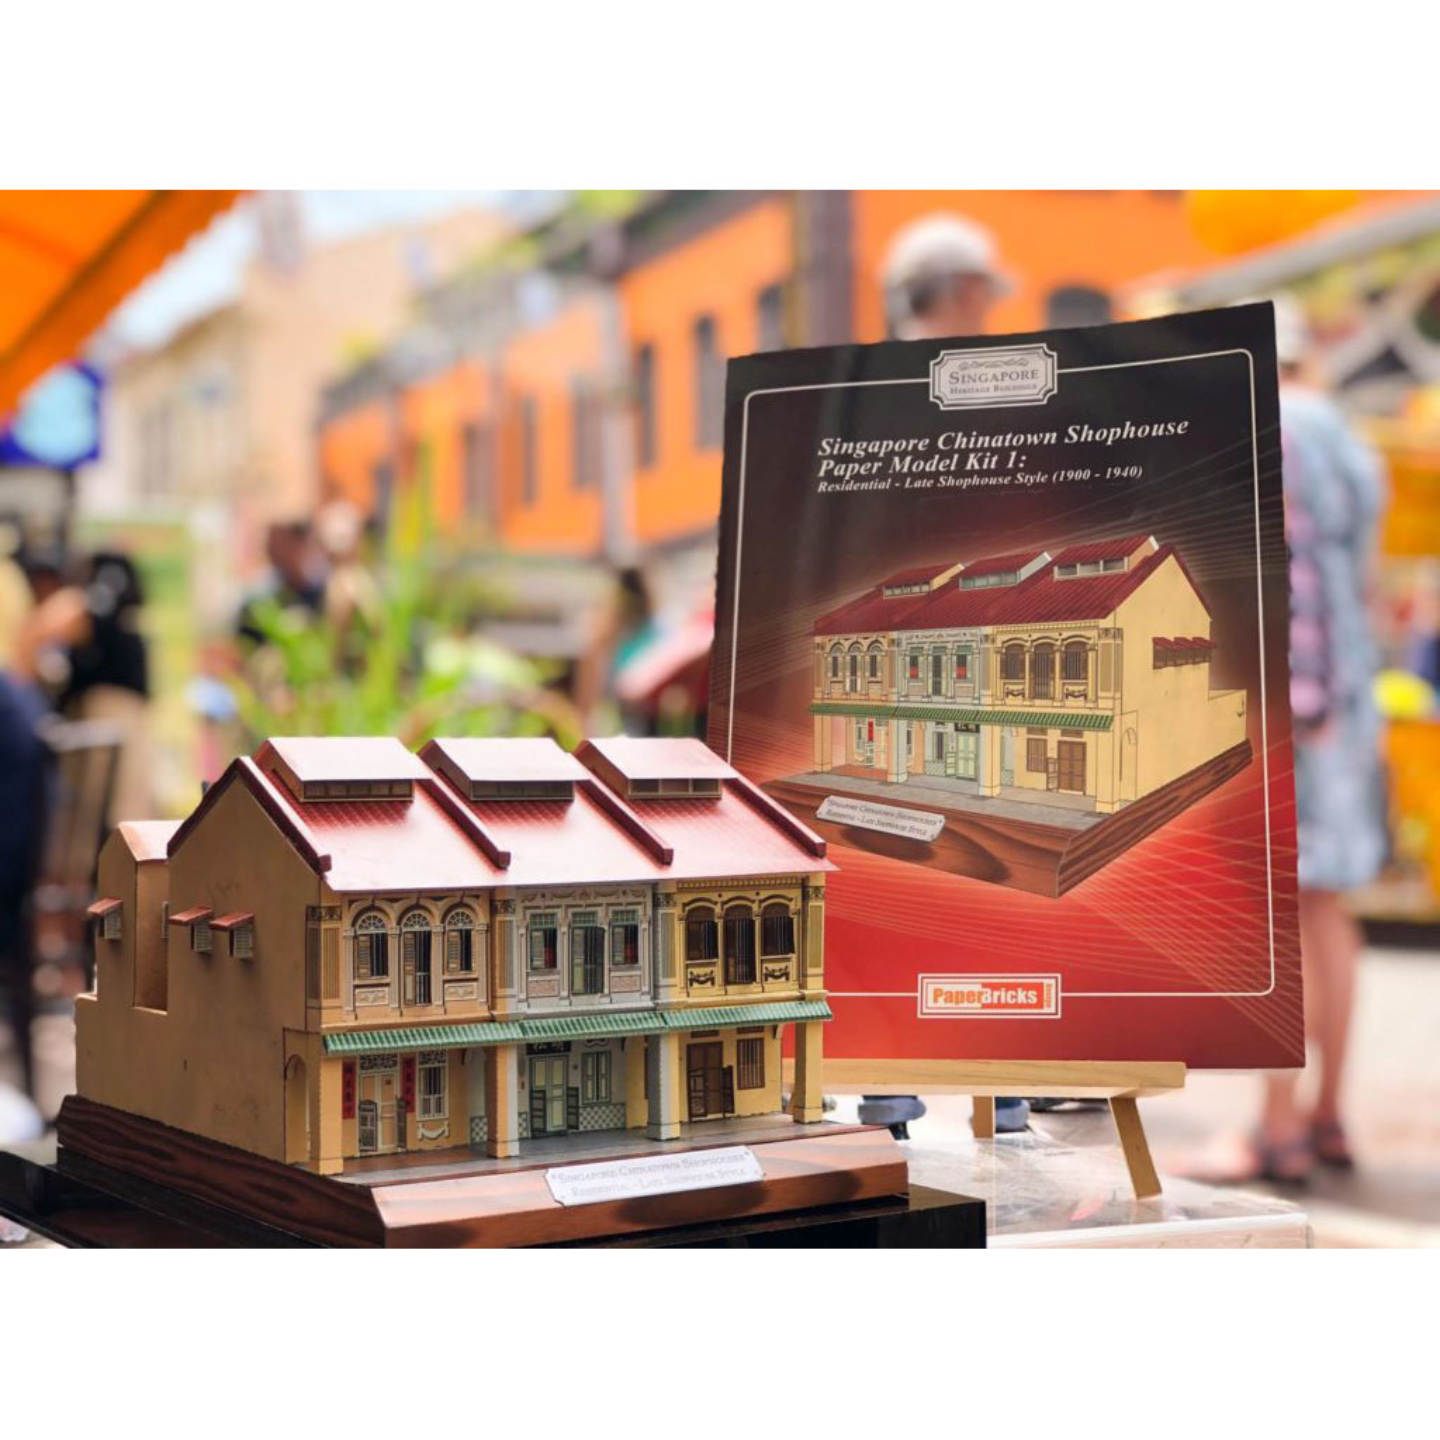 Singapore Chinatown Shophouse Paper Model Kit 1 Residential - Late Shophouse Style 1900 - 1940